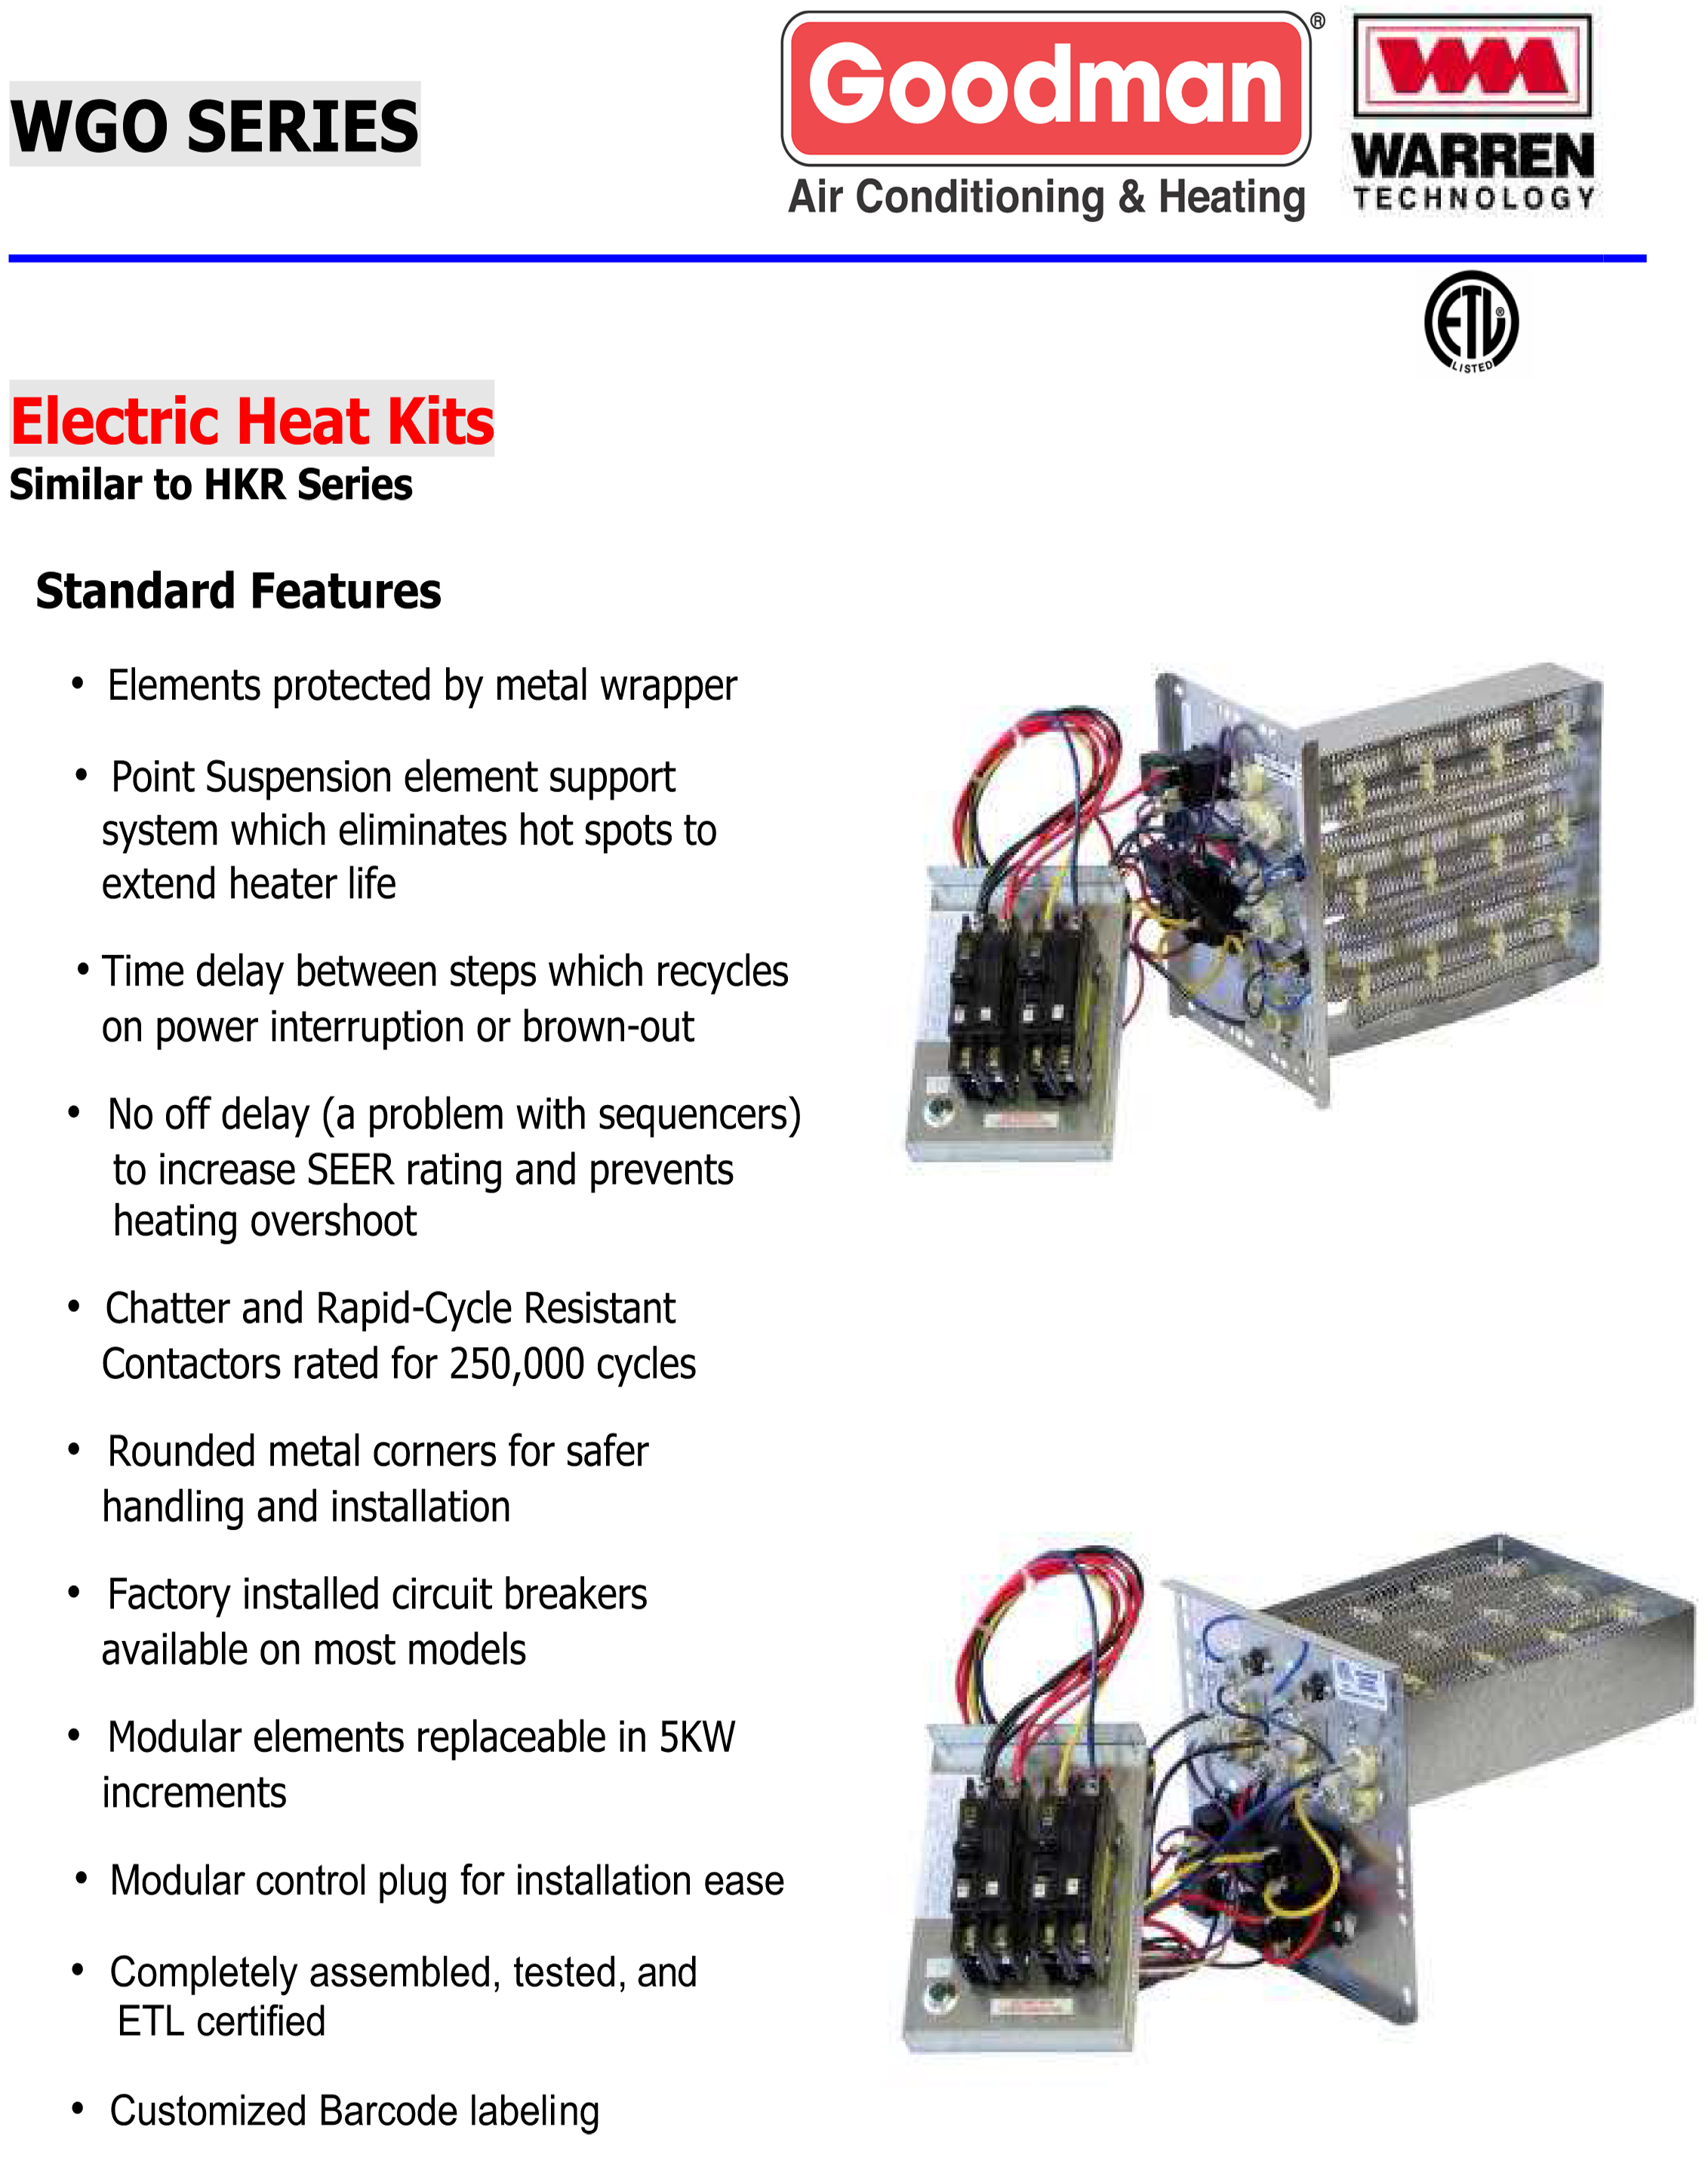 goodman wgo brochure goodman hkr 10 wiring diagram goodman air handler \u2022 wiring goodman a30-15 wiring diagram at soozxer.org